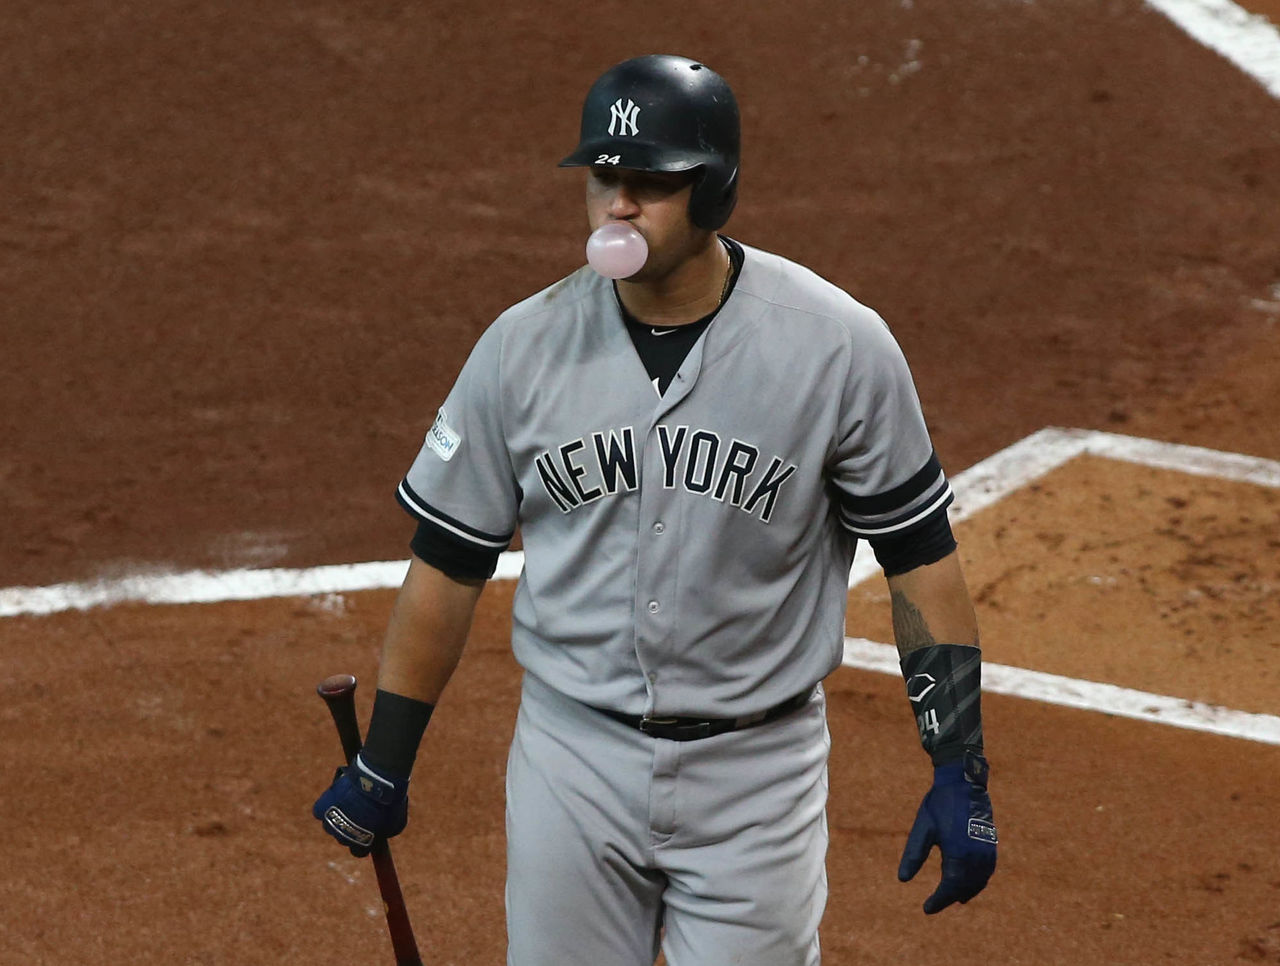 Cropped 2017 10 14t212734z 1206407949 nocid rtrmadp 3 mlb alcs new york yankees at houston astros